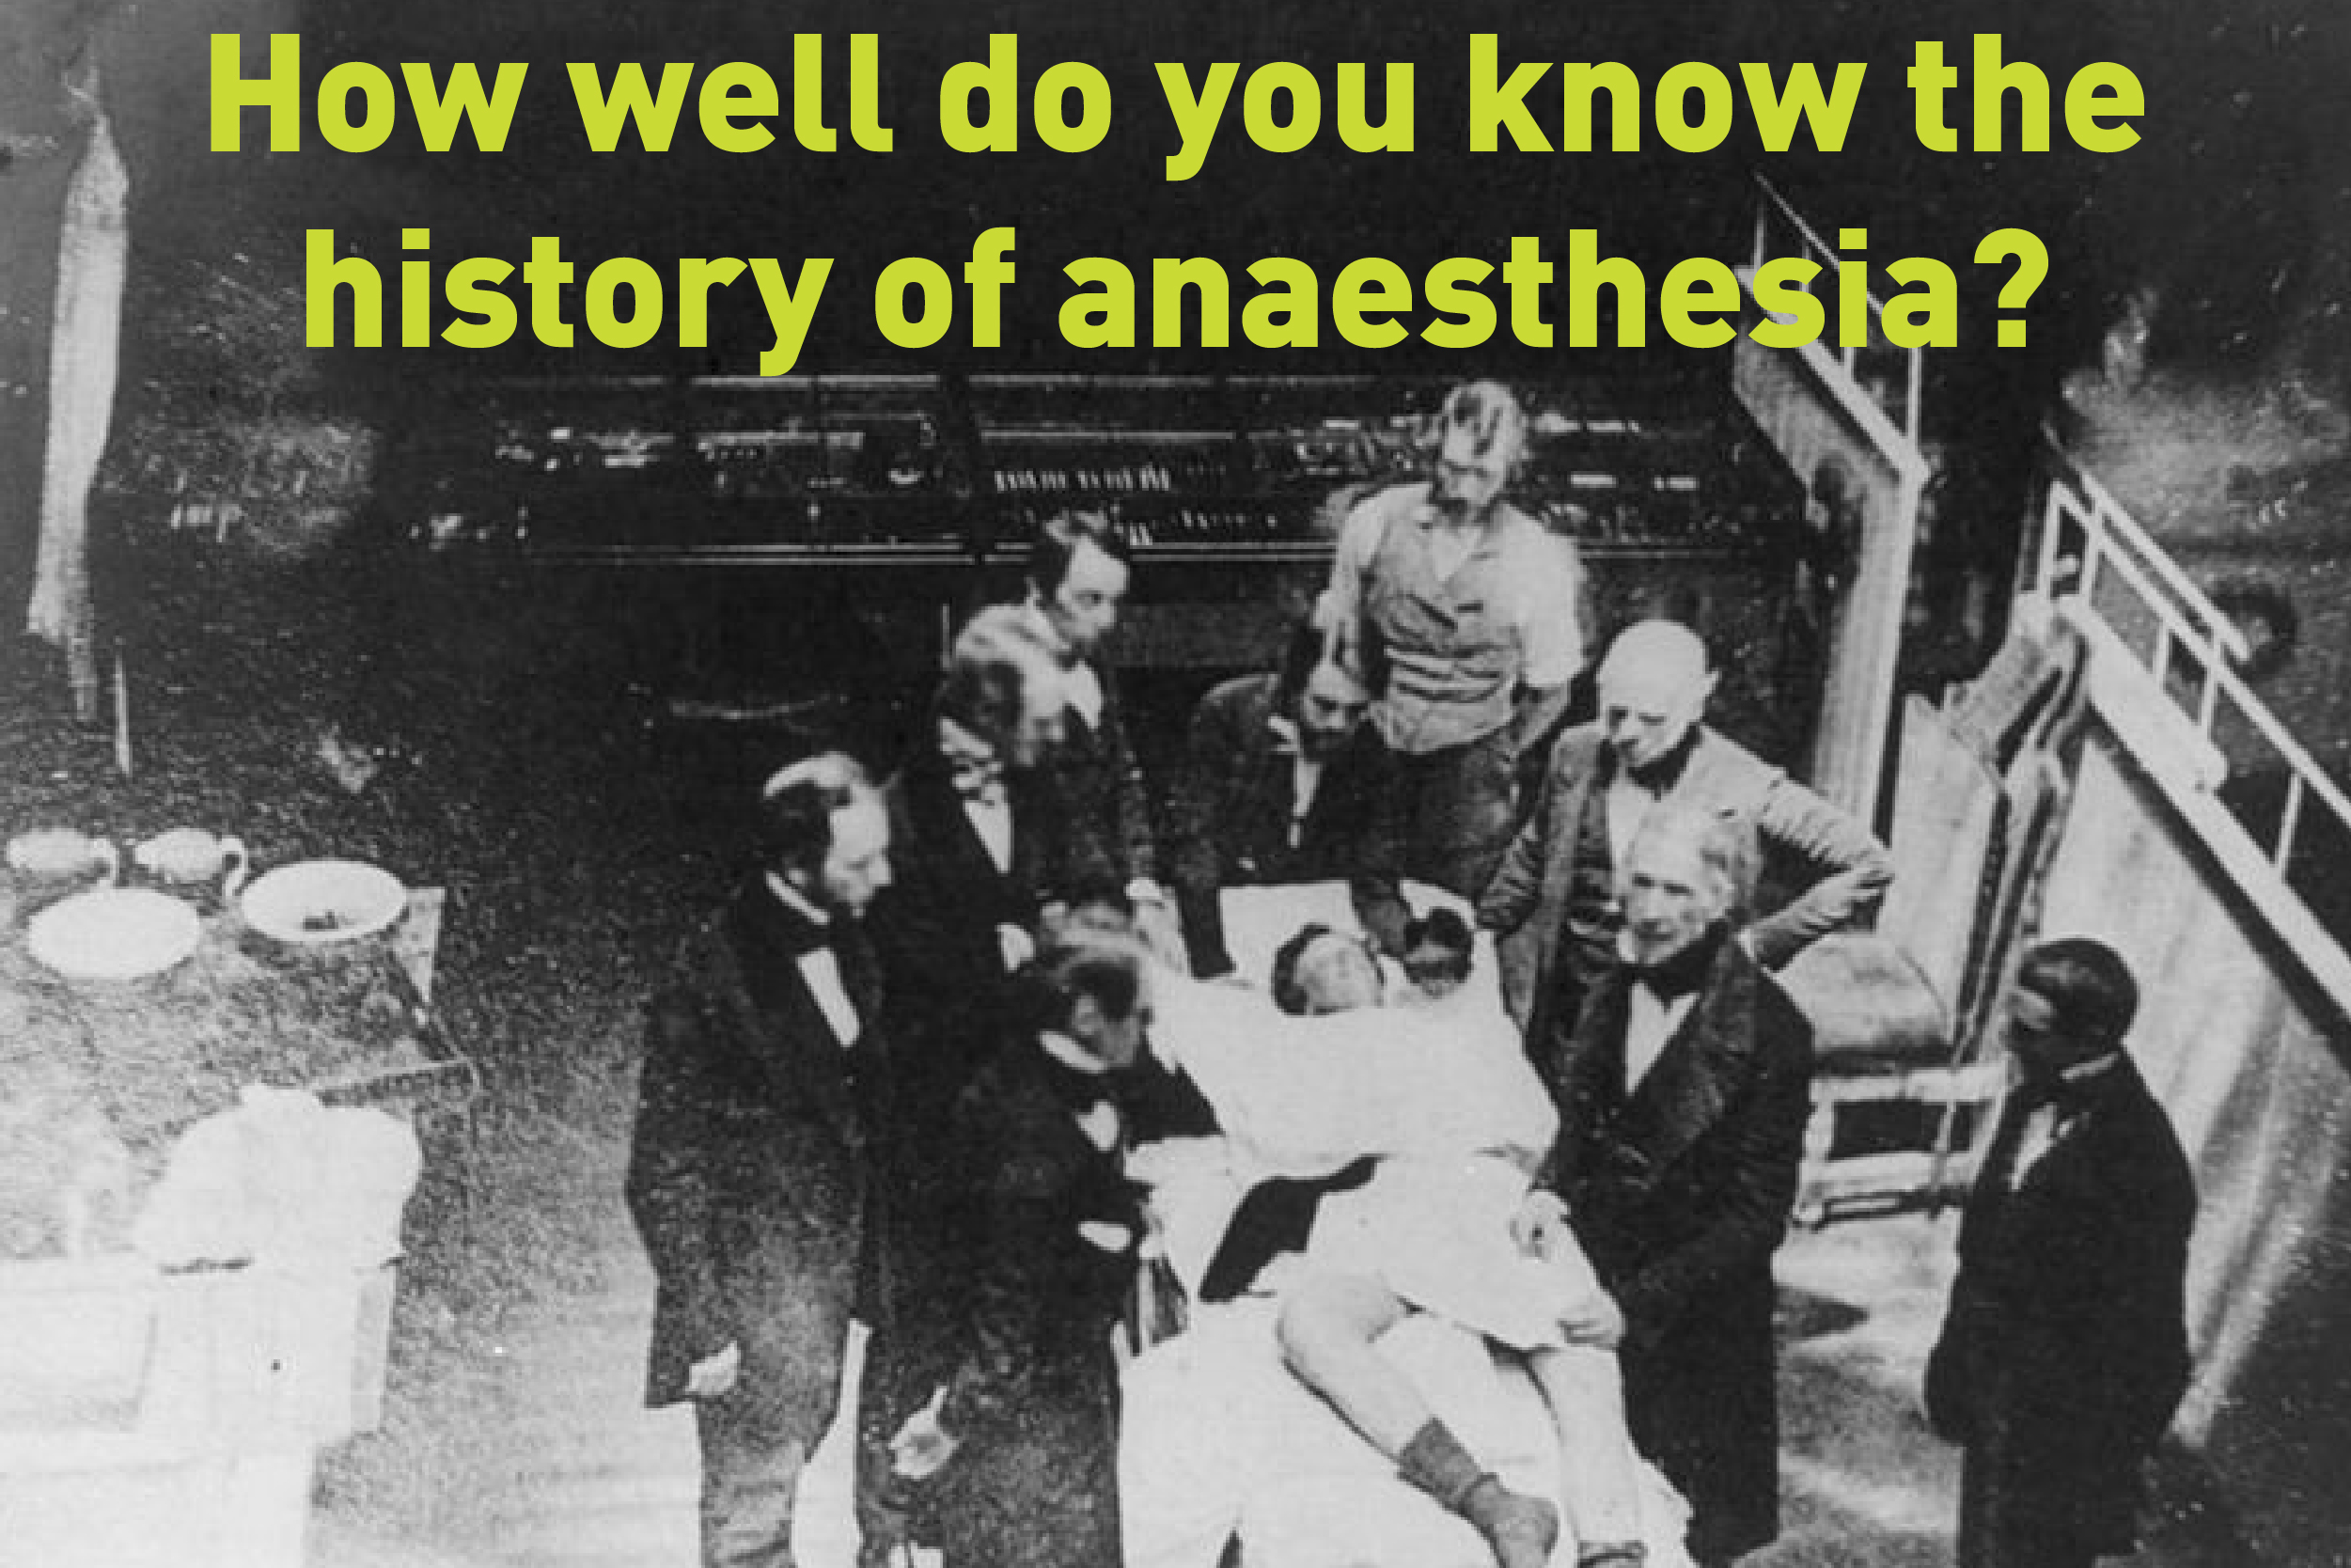 Do You Know Where Anaesthetic Came From?